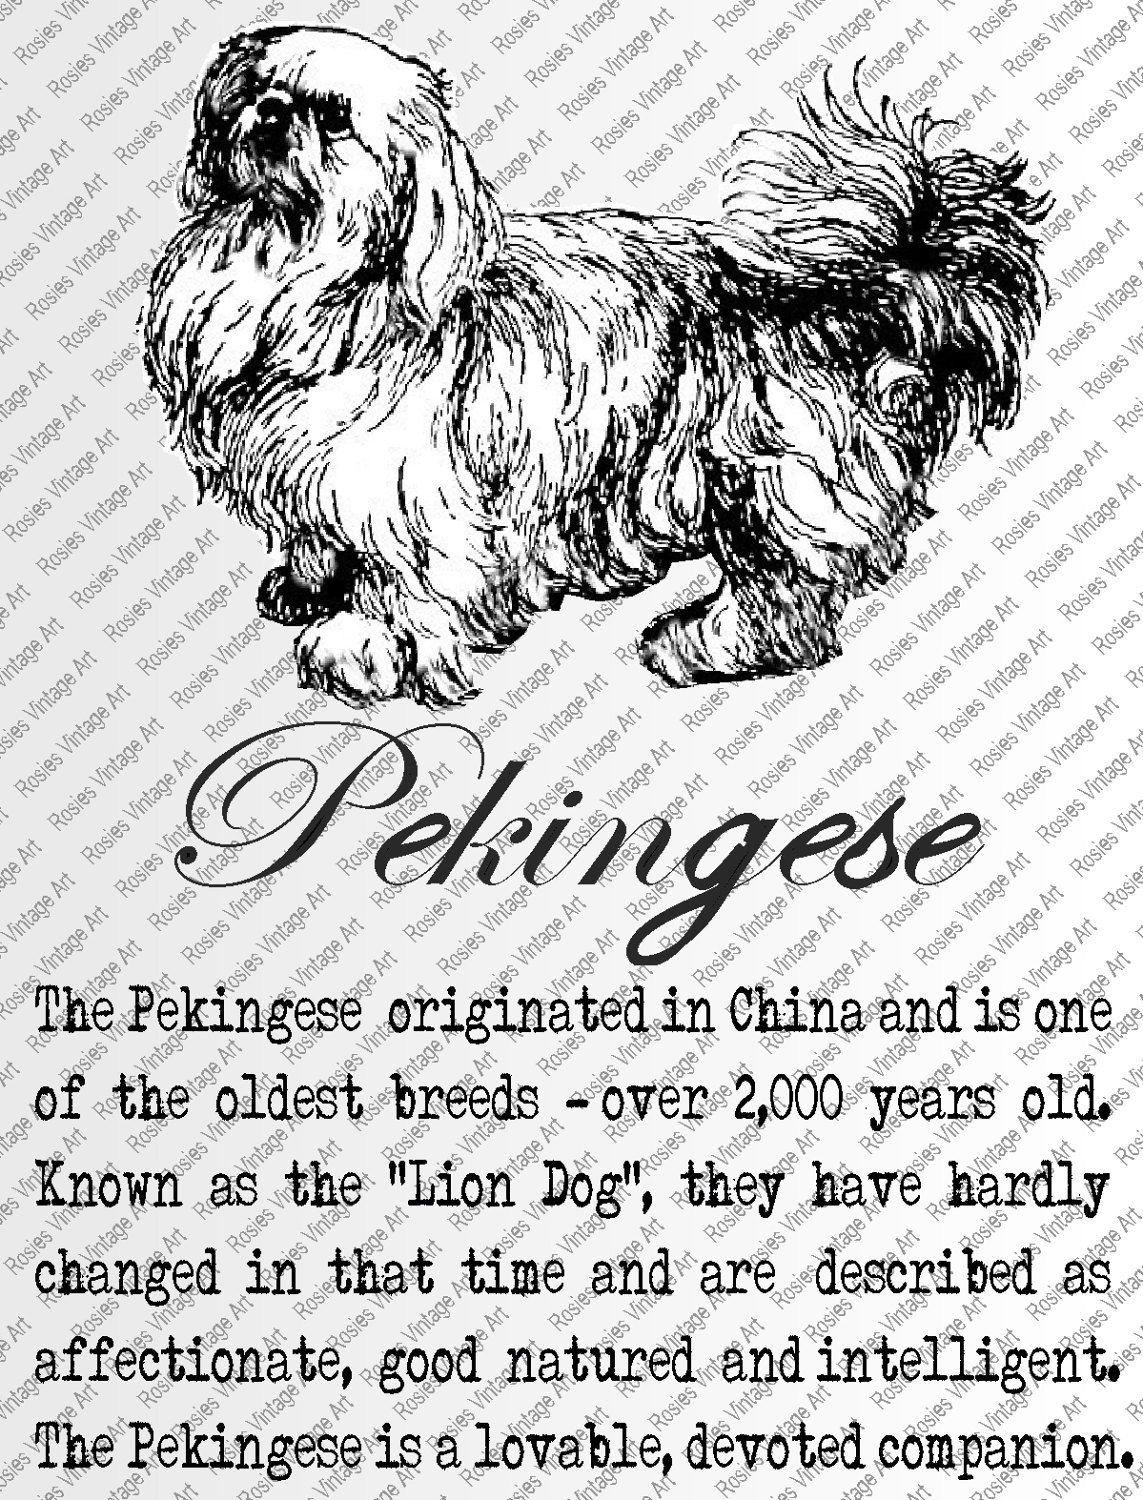 PEKINGESE DOWNLOAD INSTANT Digital Vintage Art with Description Printable Frame Cards Fabric Iron On by RosiesVintageArtShop on Etsy